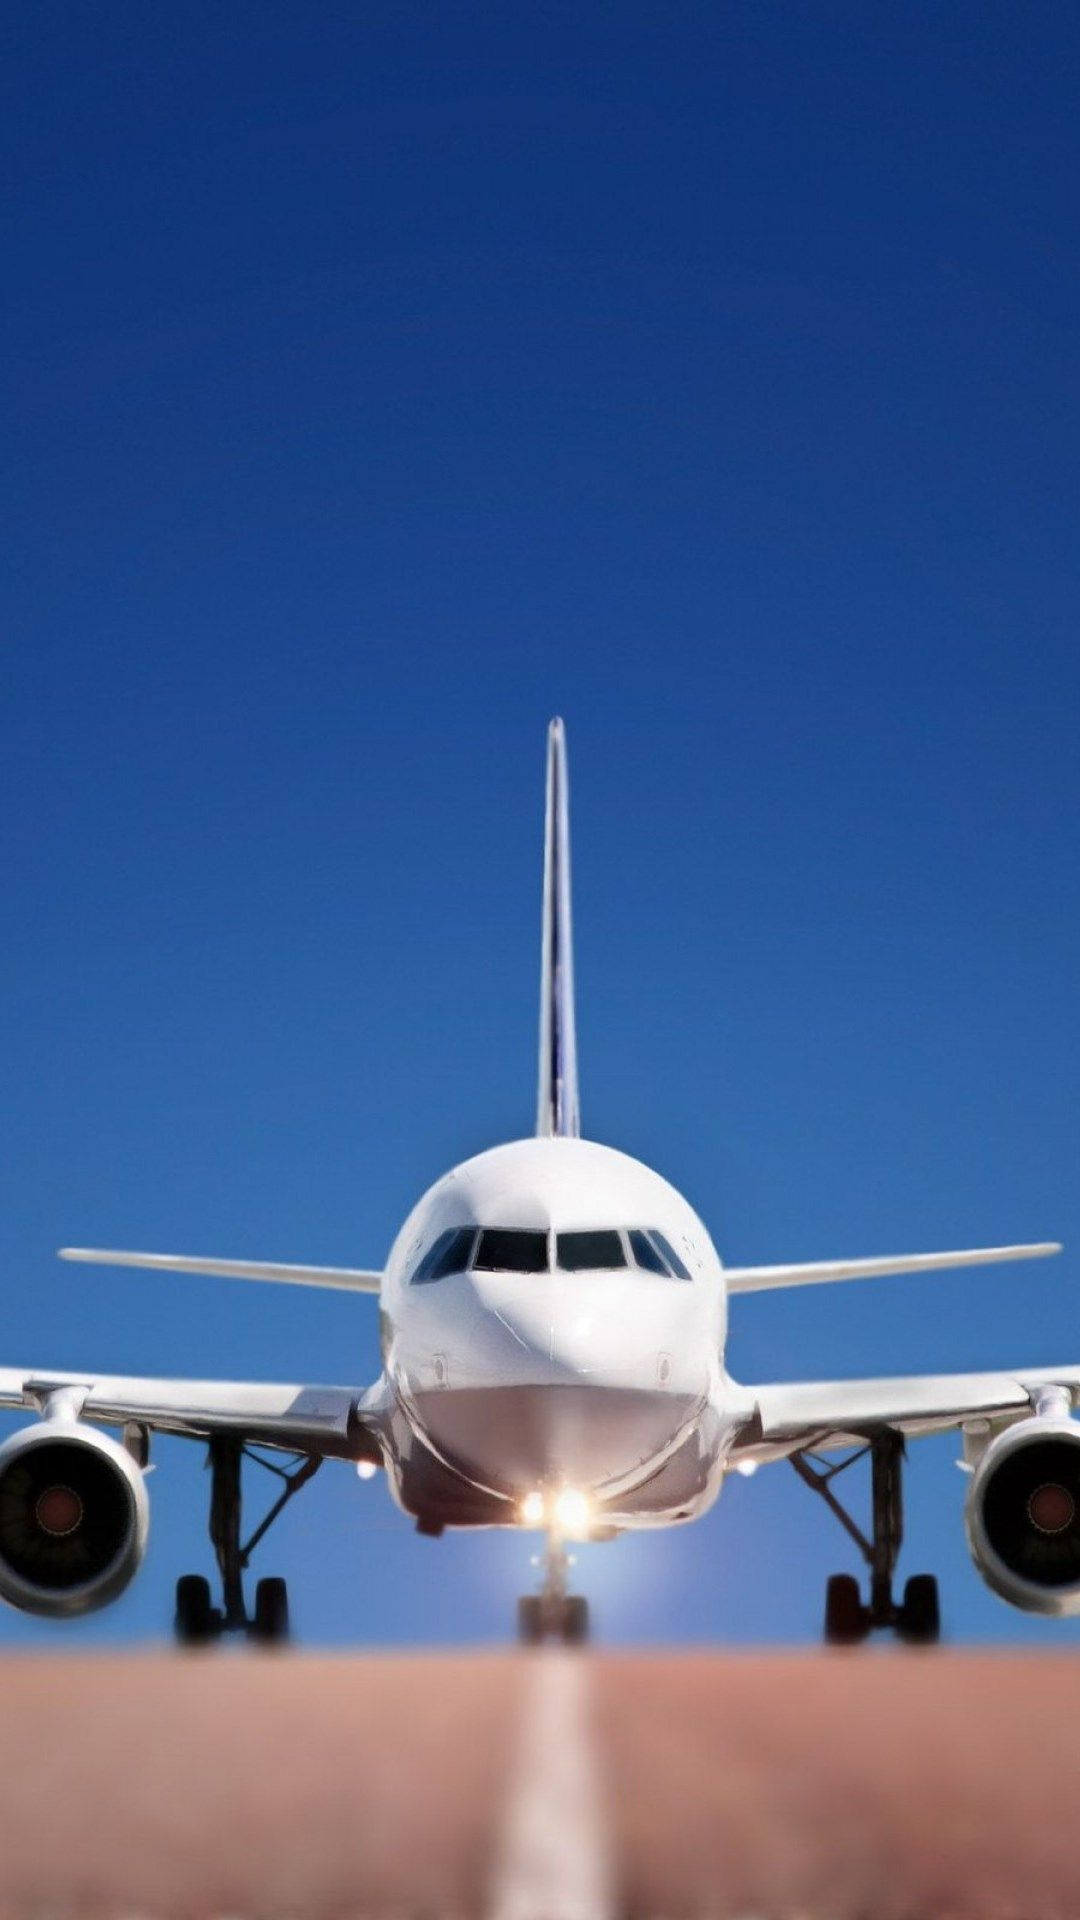 airplane hd iphone wallpaper Book cheap flights